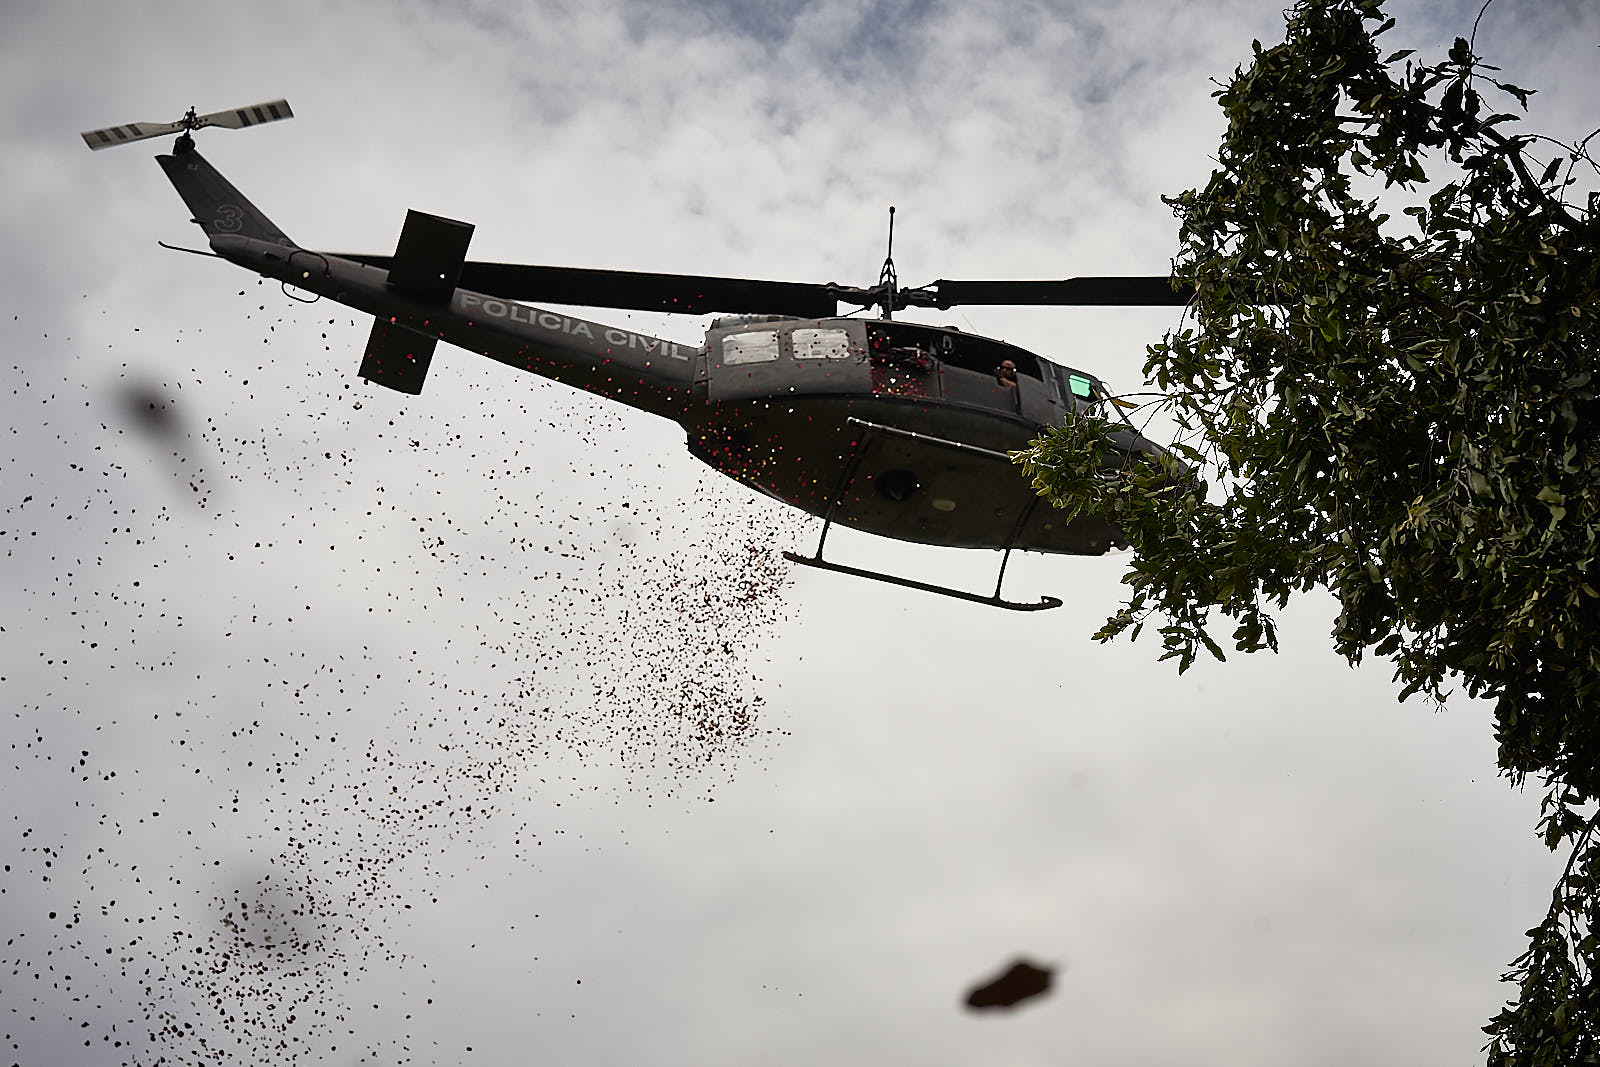 A helicopter from the Civil Police drops flowers on the funeral of Delegado Fabio Monteiro, a police officer executed by criminals. Residents of Jacarezinho say that police used the helicopter to shoot indiscriminately into the community as retaliation. (Photo C.H. Gardiner)